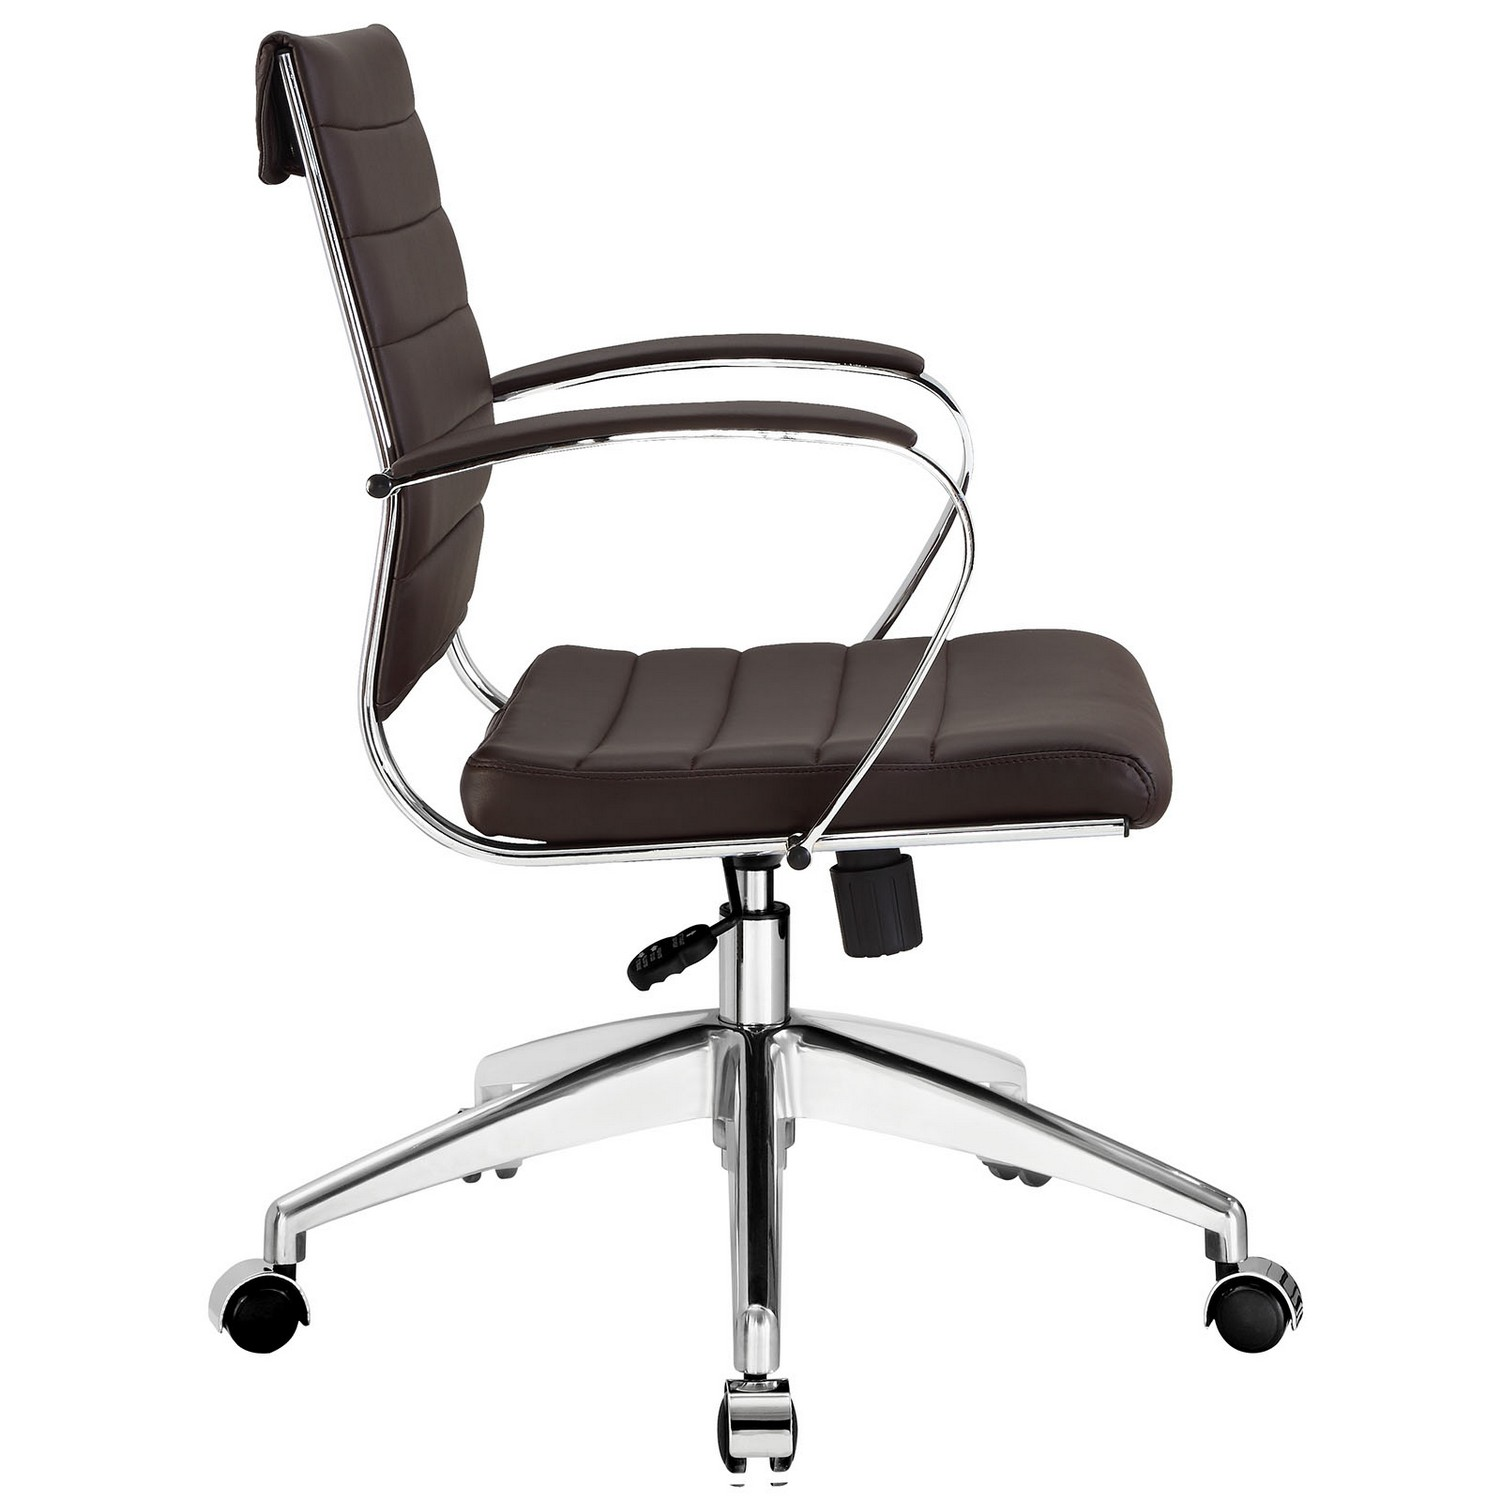 Modway Jive Mid Back Office Chair - Brown